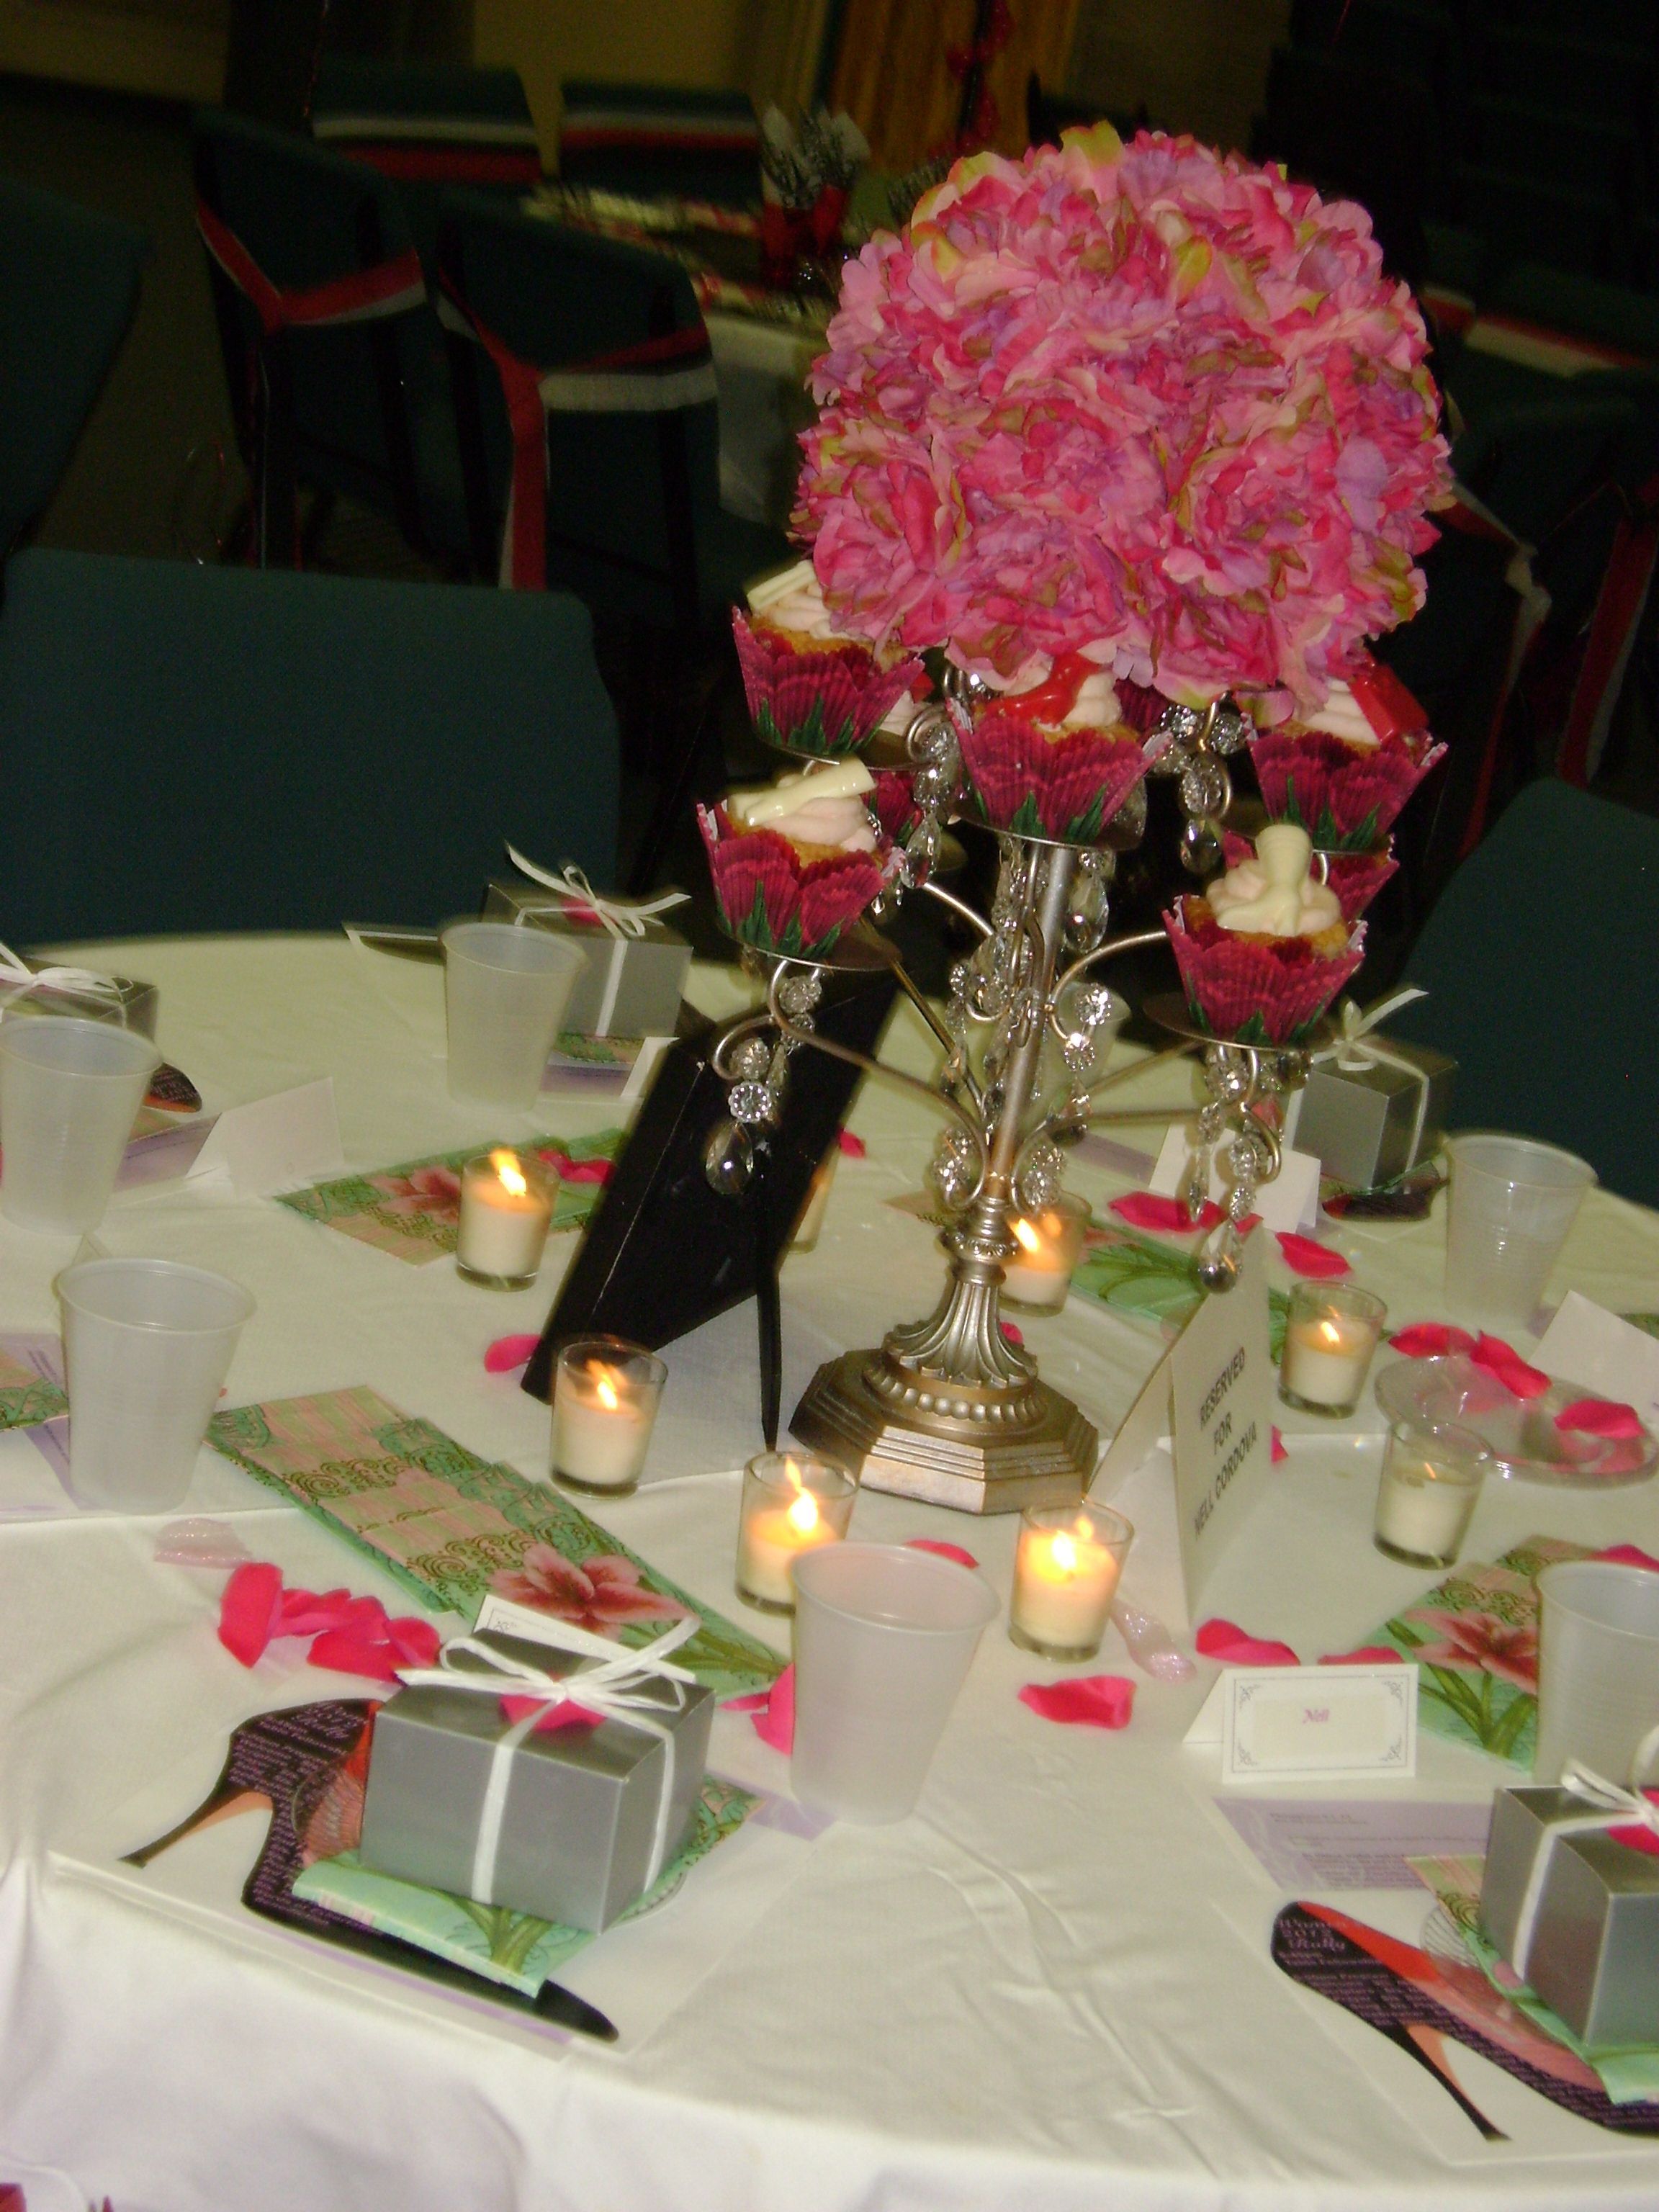 Table centerpeace for Church women's event. Theme: Walking ...